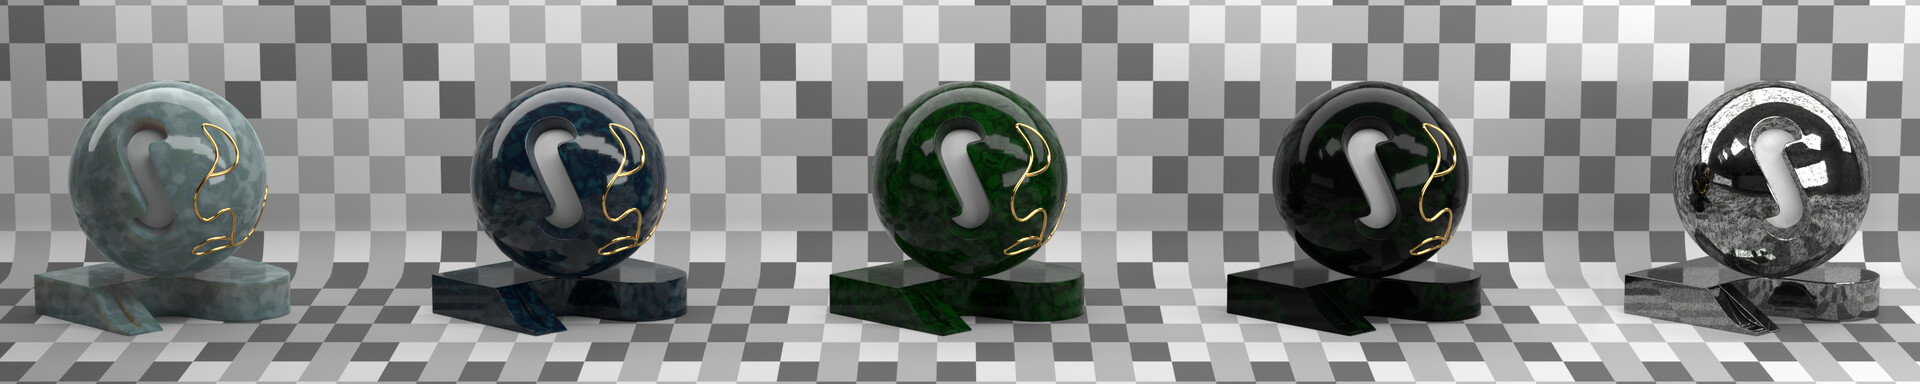 Material studies: 4 jade variations (procedural, inside Blender) and steel (from texture).